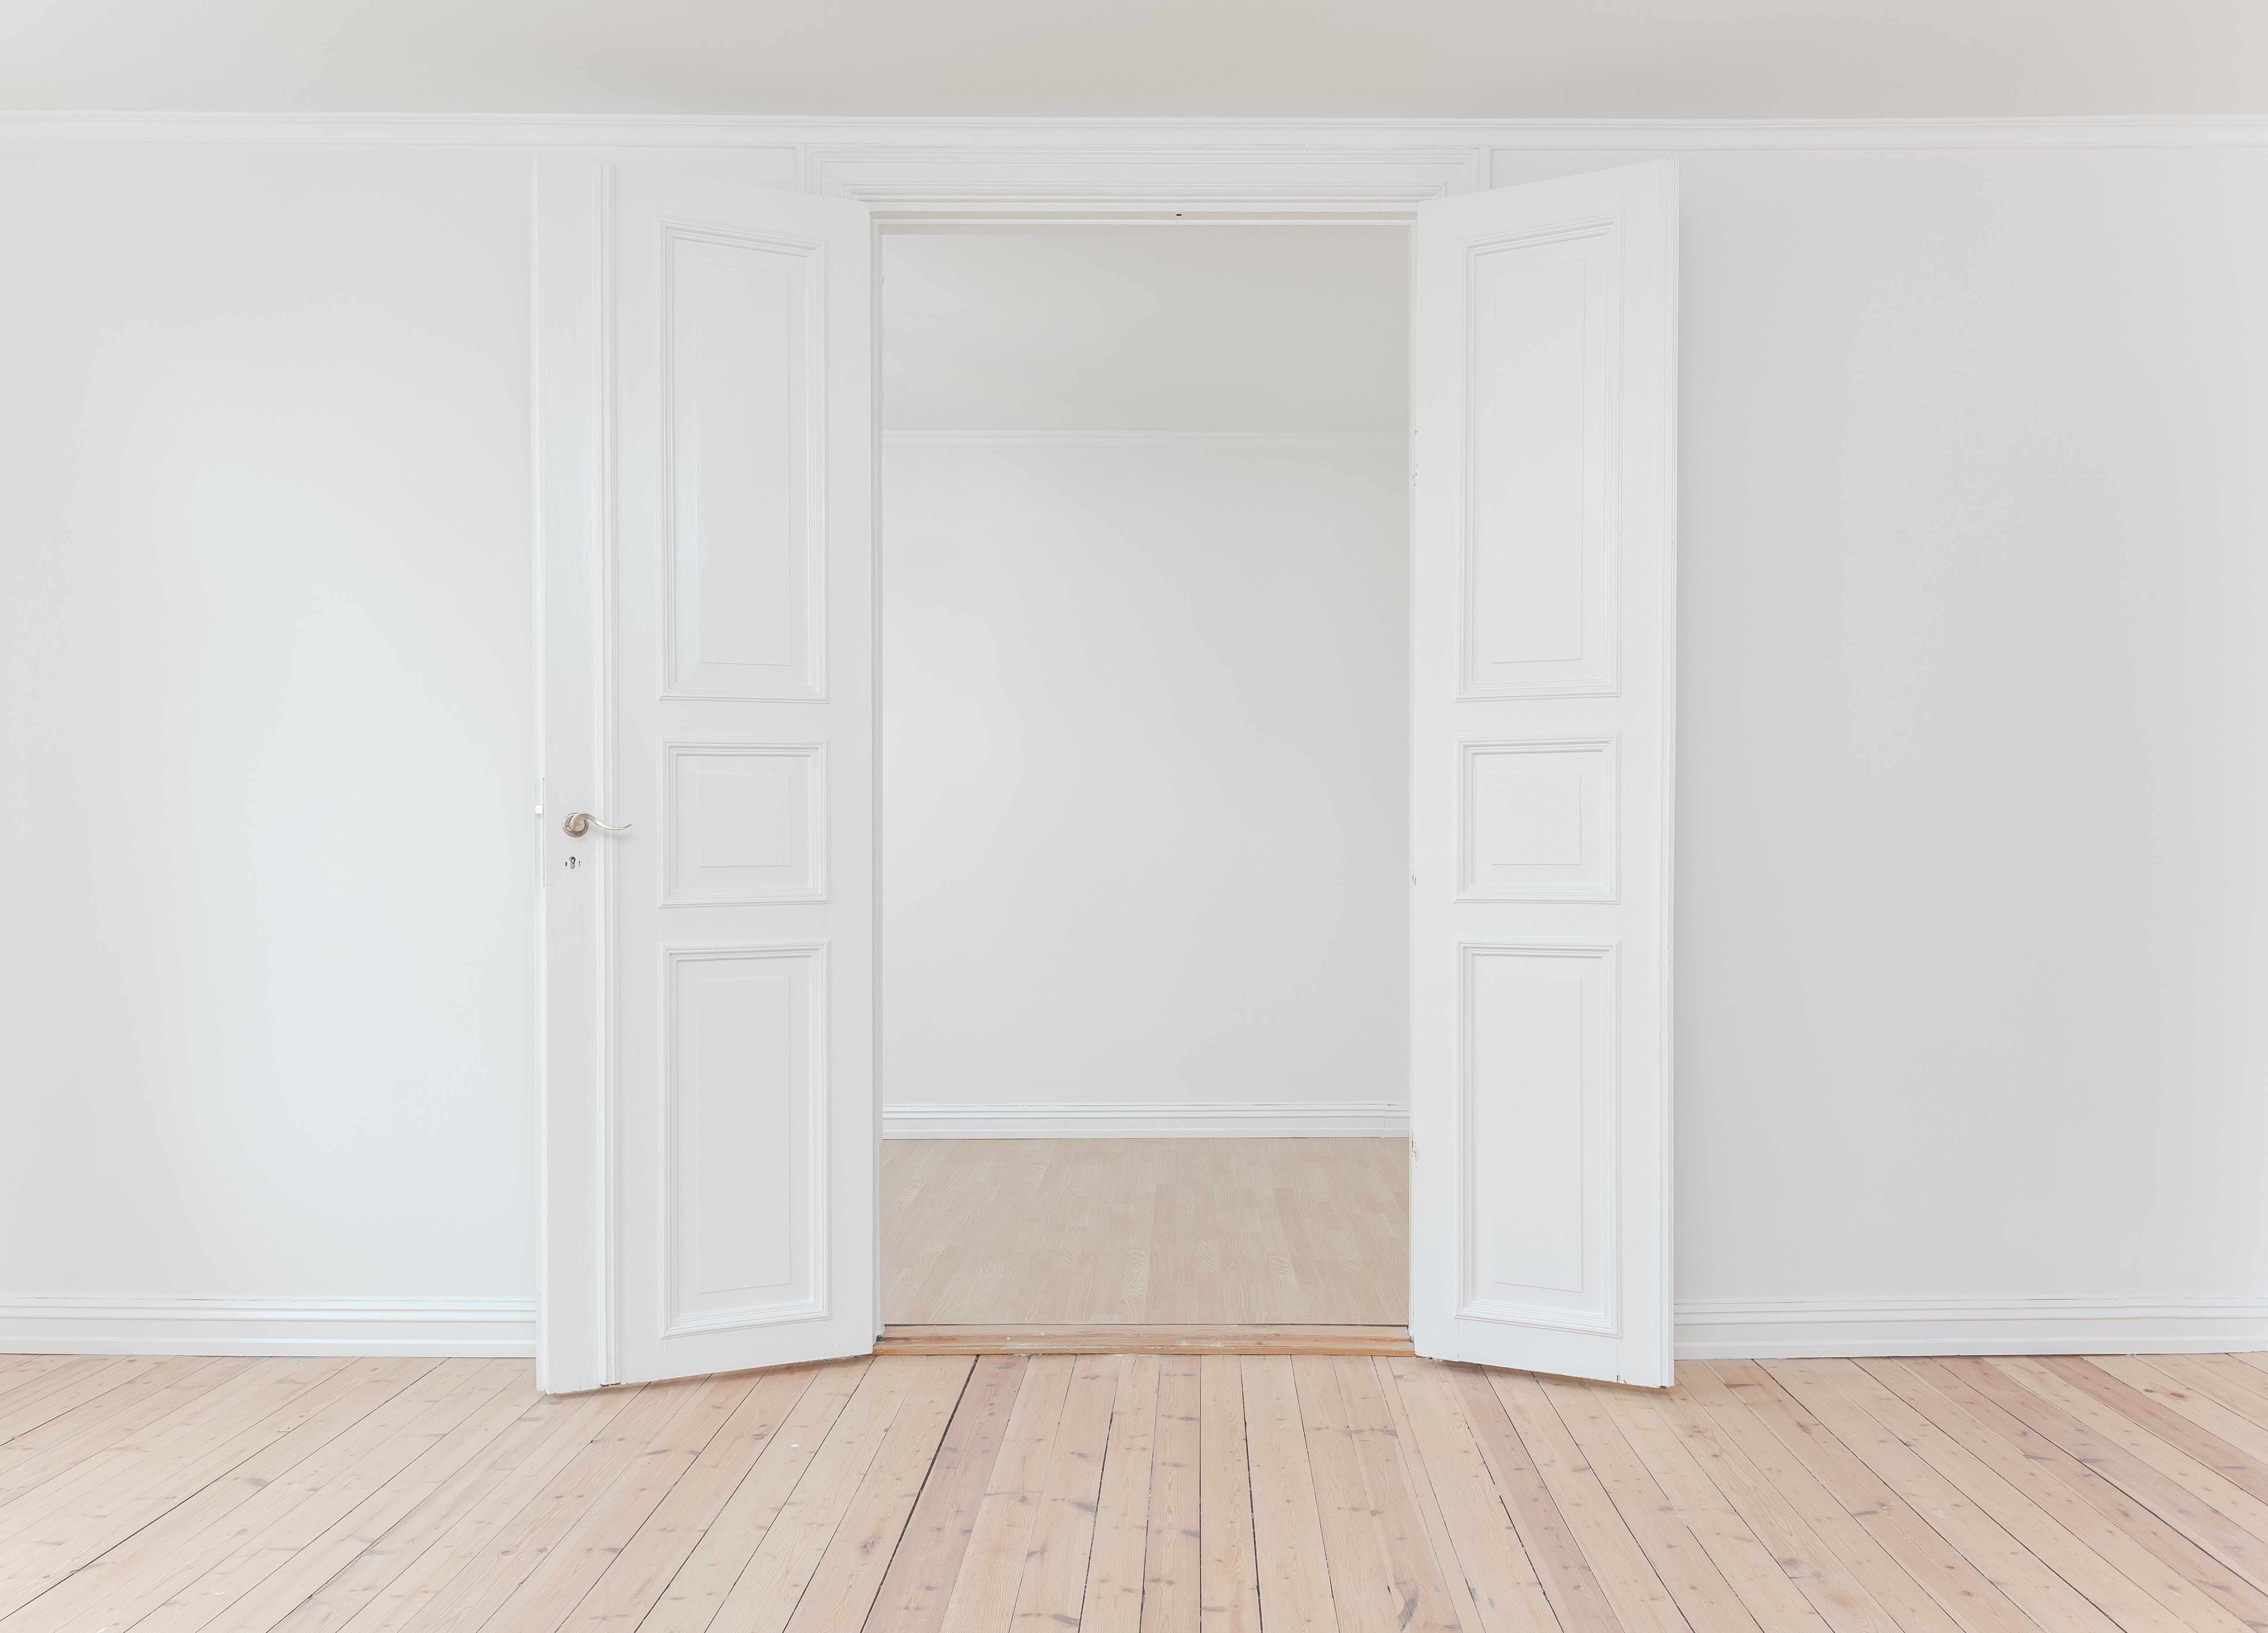 an empty room with wooden flooring and white walls with a white double door open leading to another room